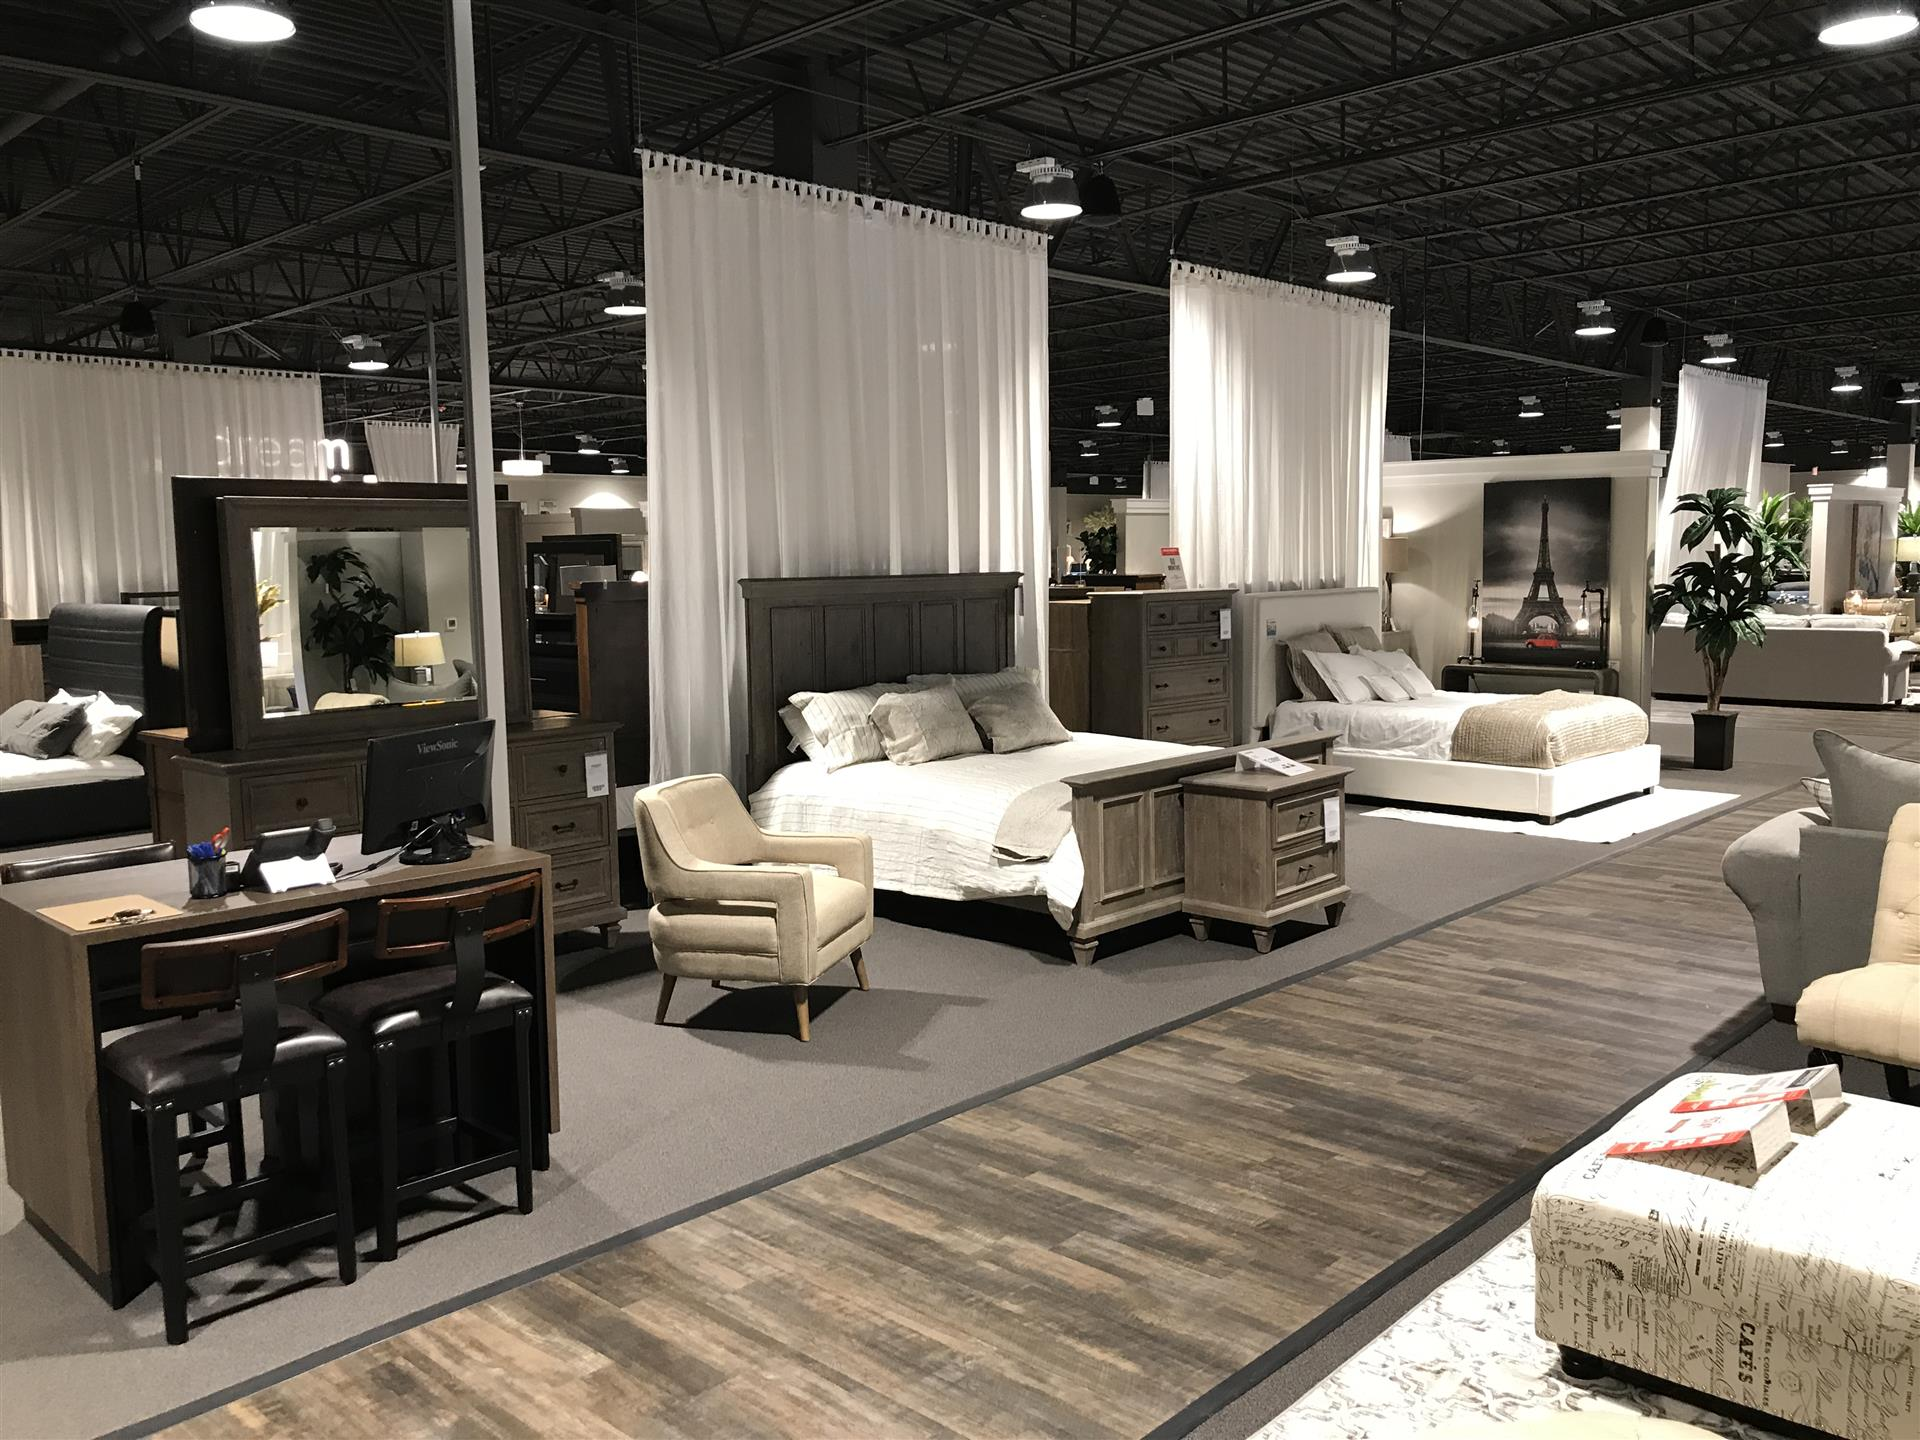 furniture showroom, shows beds, nightstands with various room set ups